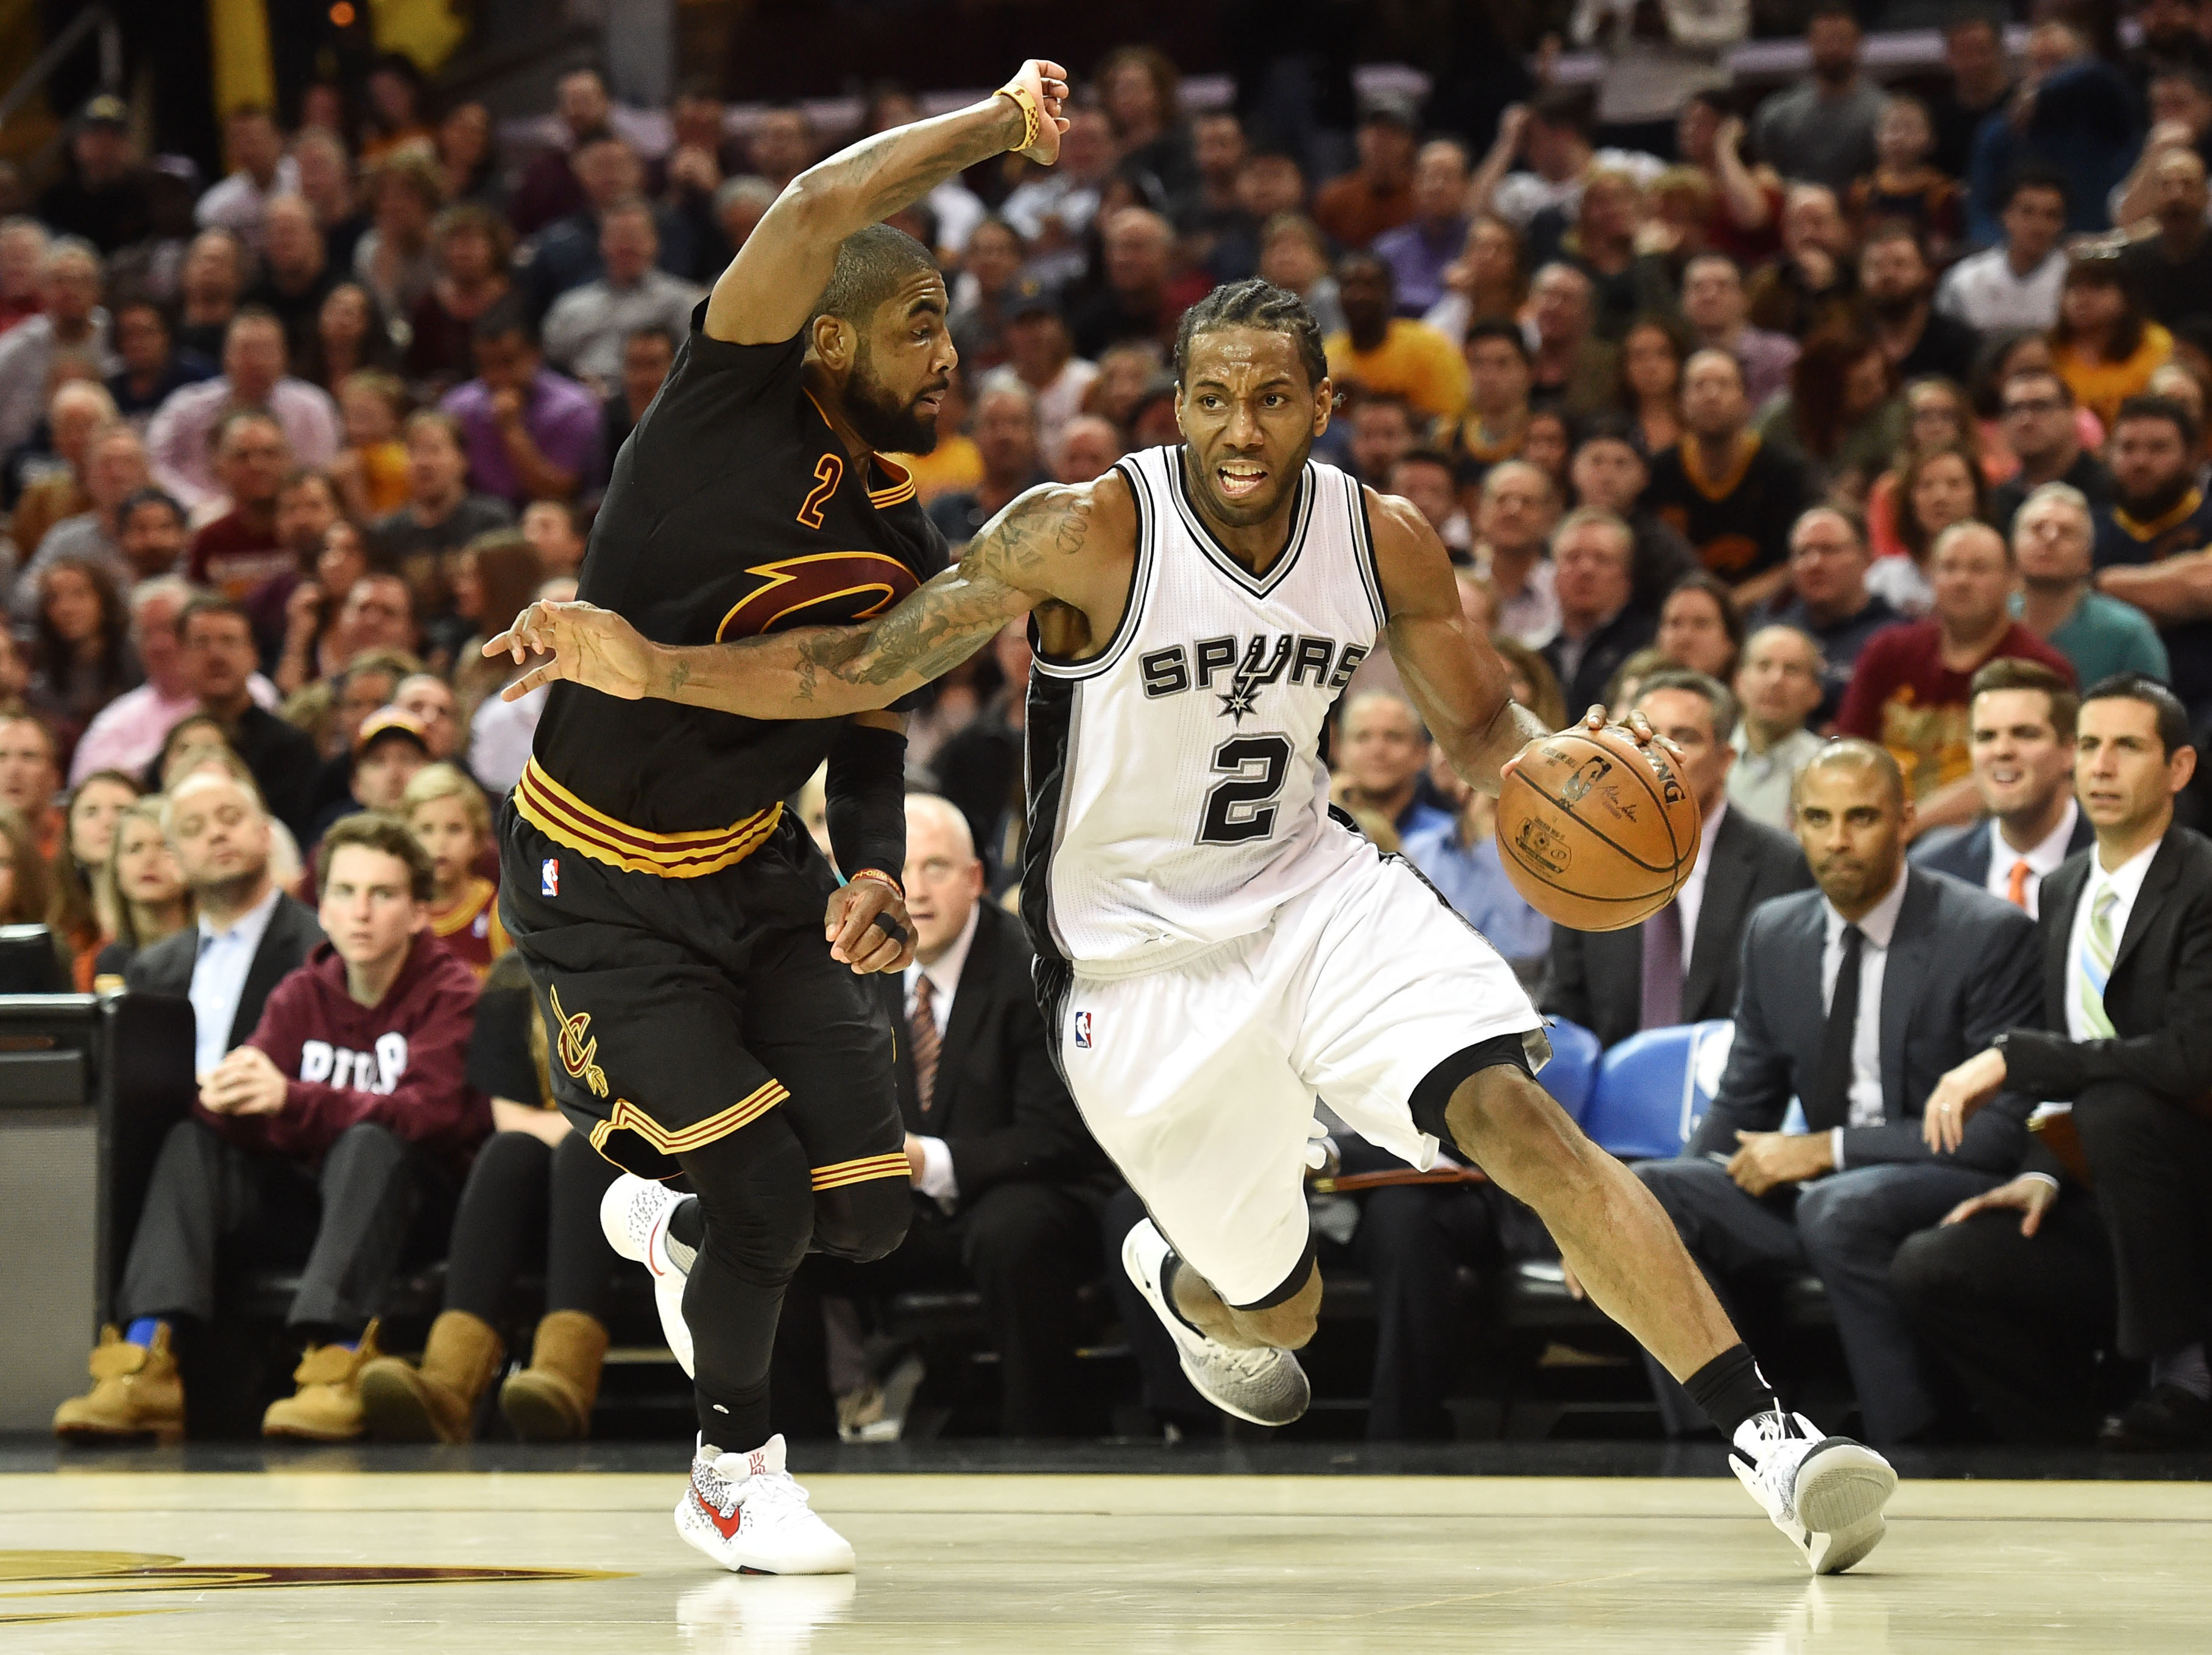 9830019-nba-san-antonio-spurs-at-cleveland-cavaliers